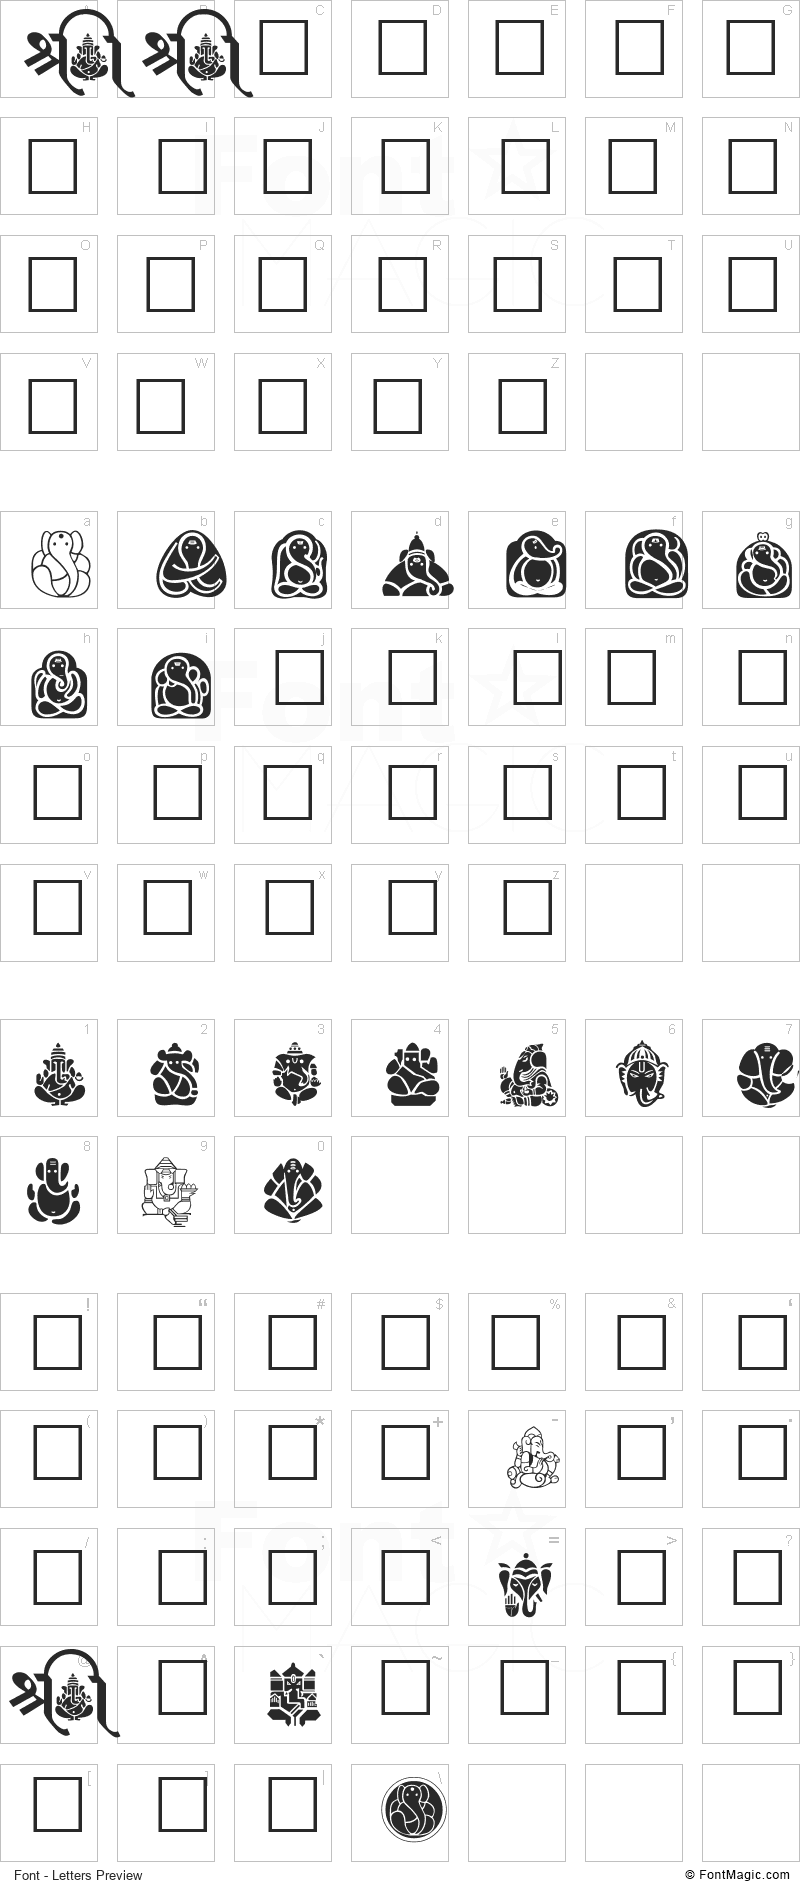 AclGanpatiSymbols Font - All Latters Preview Chart